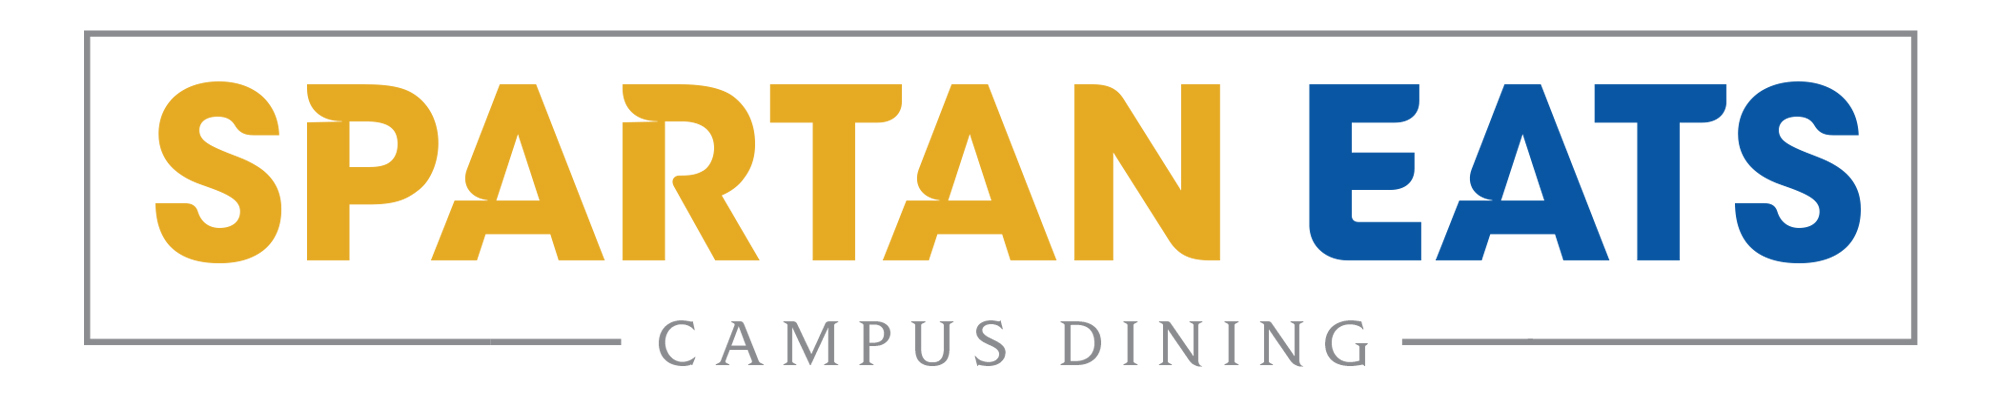 Dine On Campus at San Jose State University || Dining Map San Jose State Map on texas a&m commerce map, mesa state map, university of washington campus map, alcorn state map, university of washington state map, staples center state map, green bay state map, los angeles state map, dallas baptist map, central connecticut state university campus map, billings state map, montgomery state map, arlington state map, uc san diego map, albany state map, sac state map, university of houston main campus map, kenosha state map, terre haute state map, cal poly san luis obispo map,